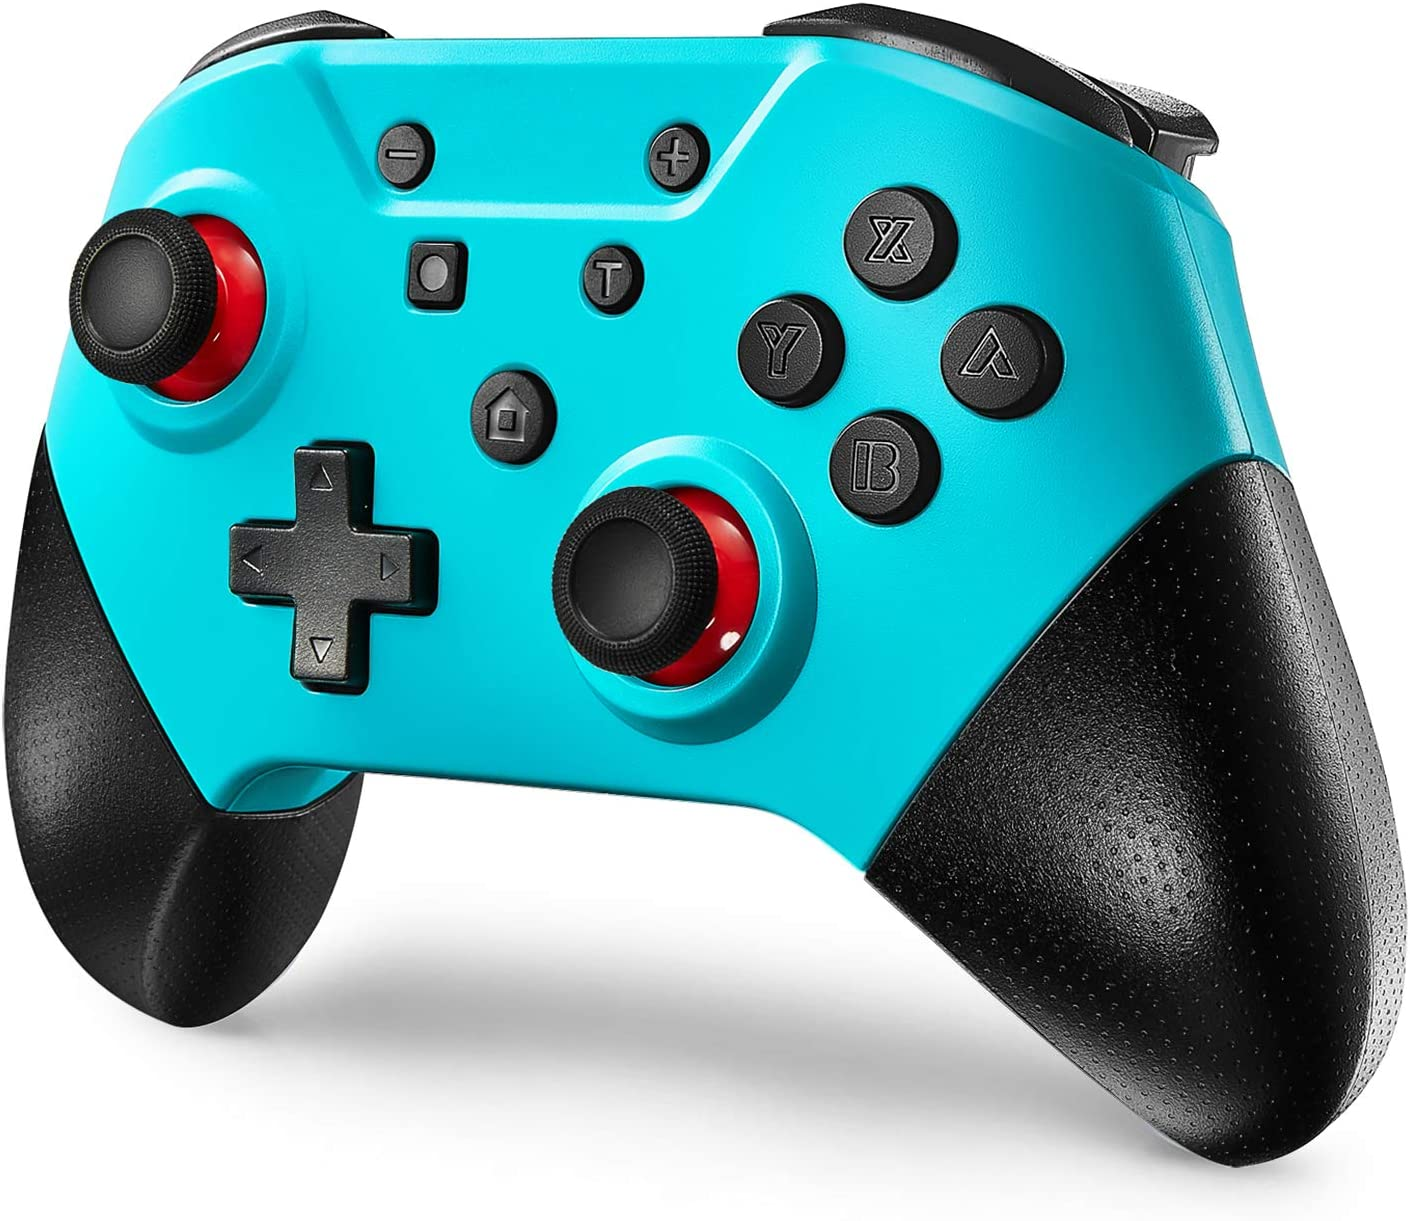 Comdigio Switch Pro Controller for Nintendo Switch and PC, Wireless Switch Controller Gamepad Joystick with NFC and Home Wake-Up Function,Support Gyro Axis, Turbo and Dual Vibration.Blue